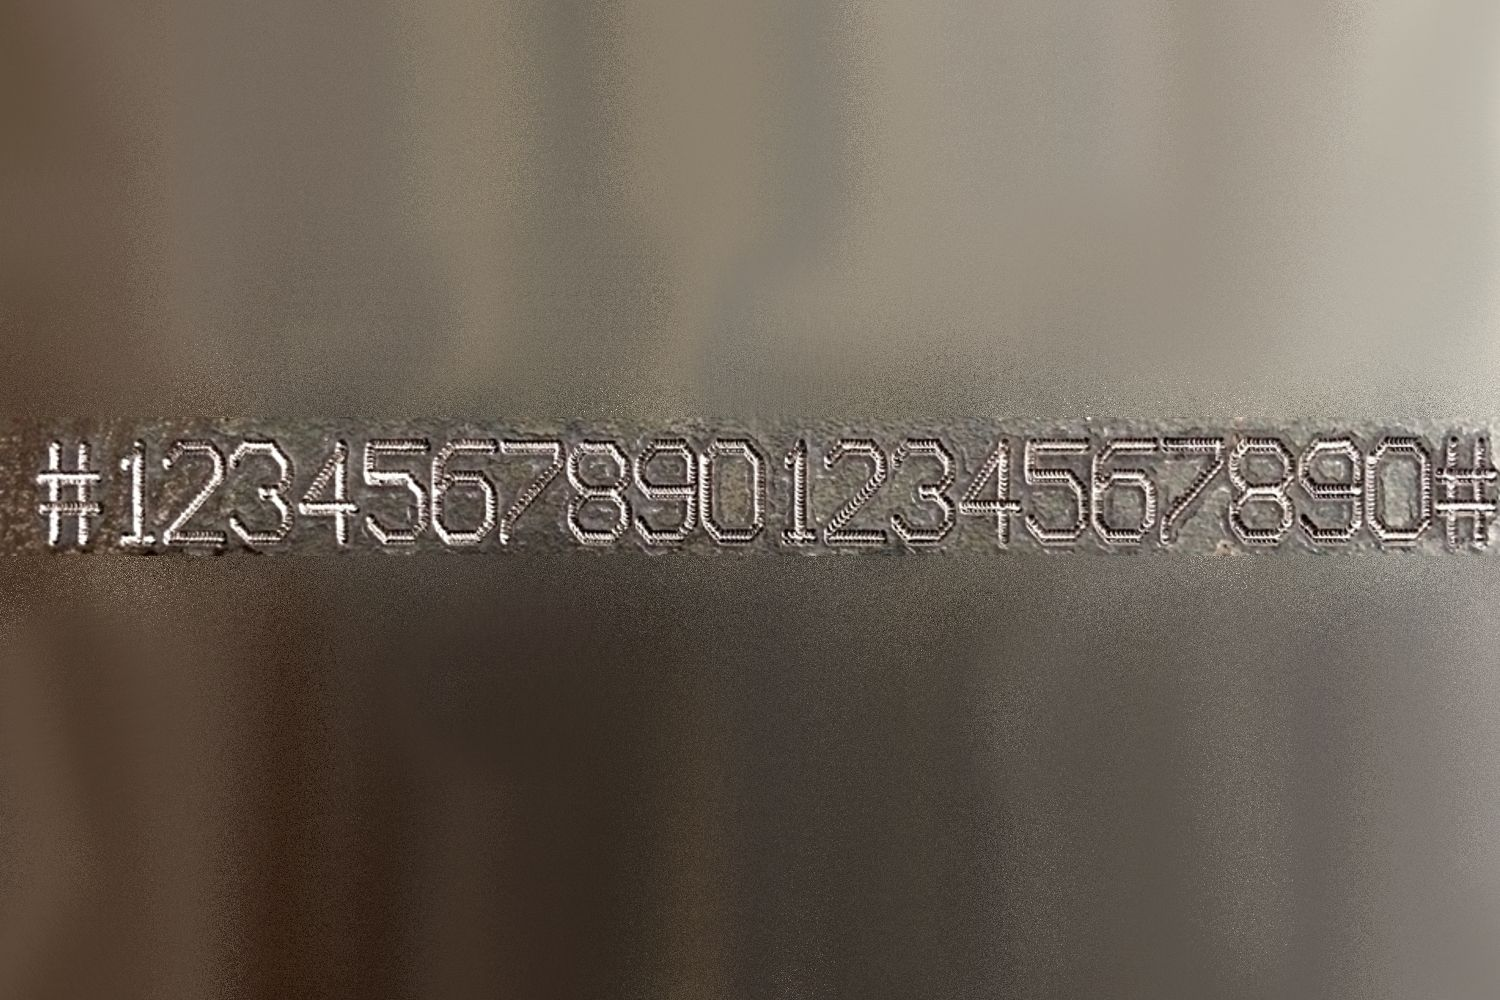 Large numbers dot pin marking